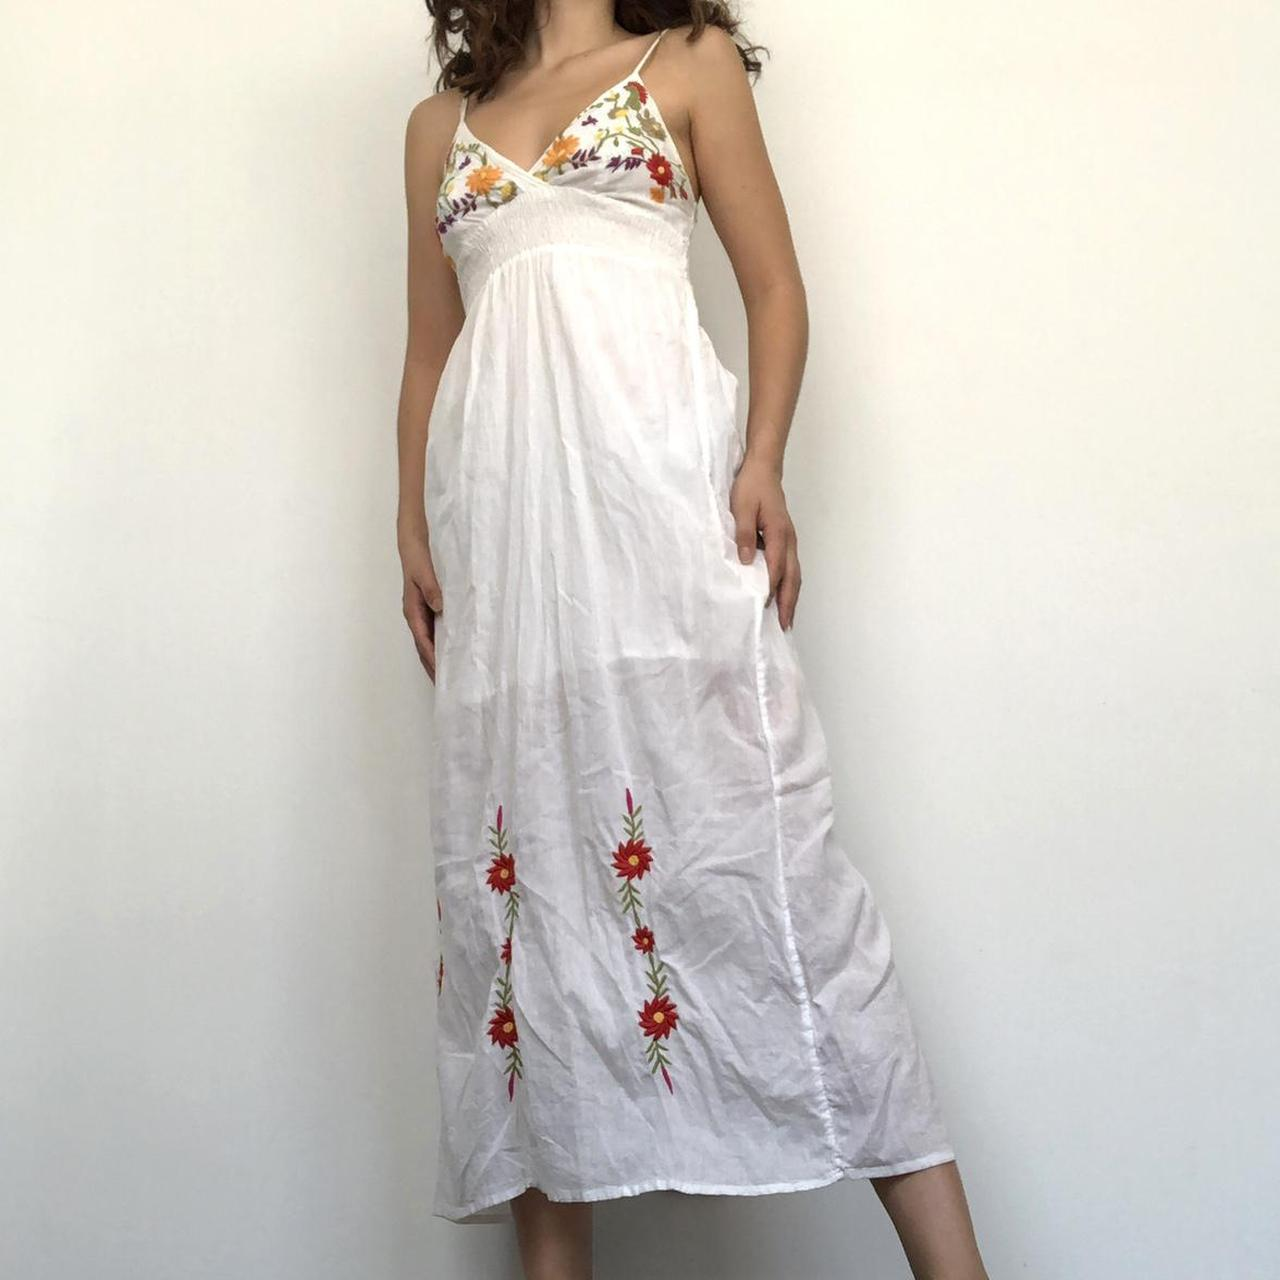 Product Image 1 - White summer dress  Size: small